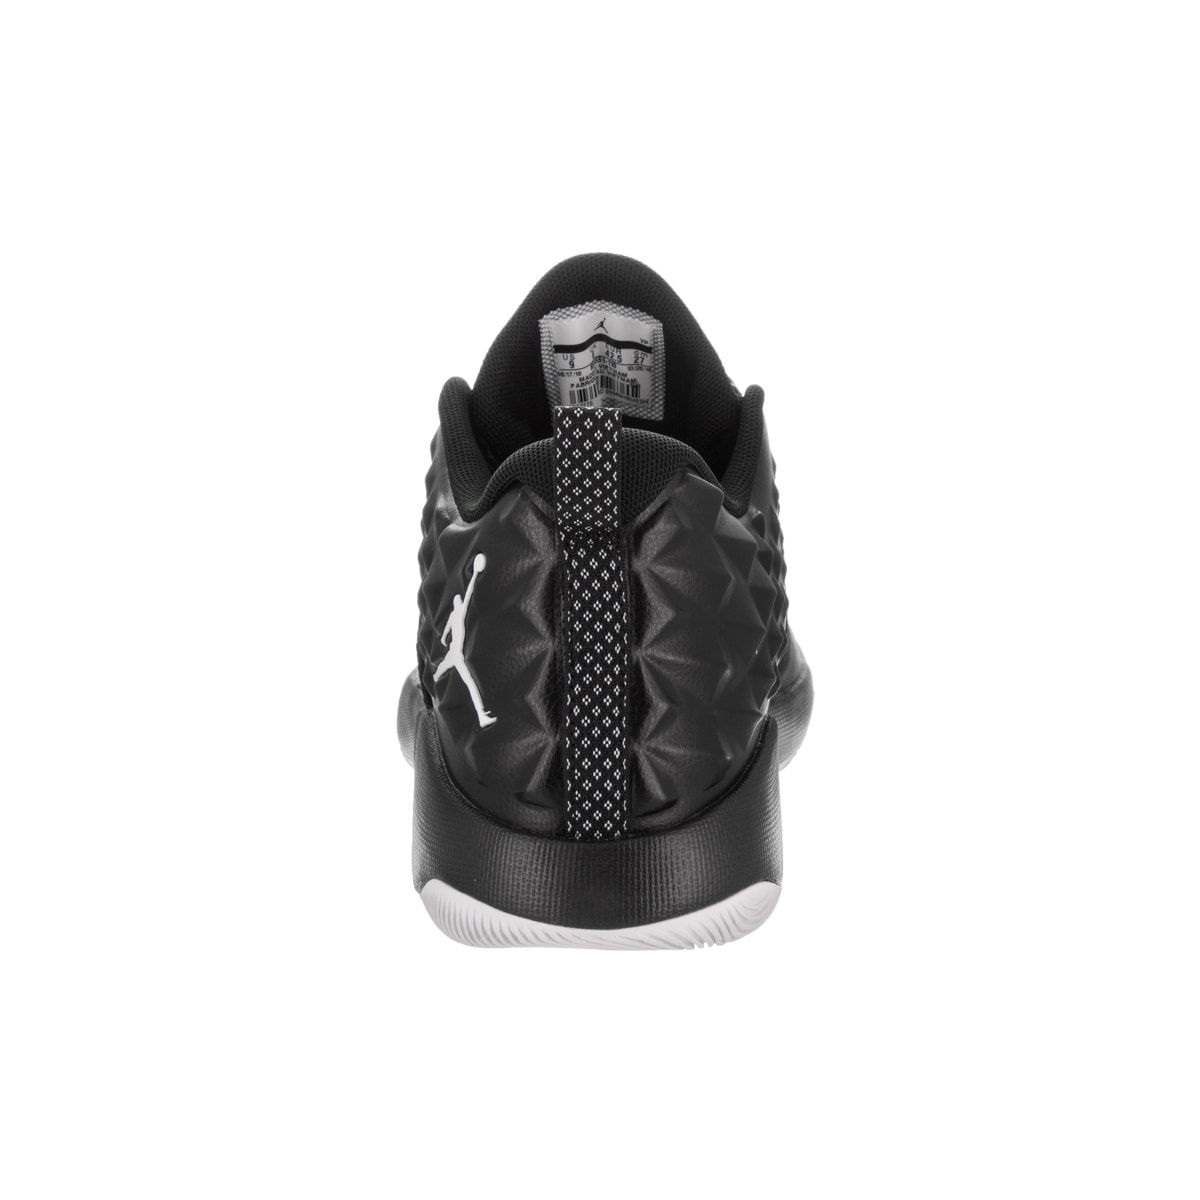 8d877e46c4 Shop Nike Jordan Men's Jordan Extra Fly Black/ White Basketball Shoe - Free  Shipping Today - Overstock - 14428012